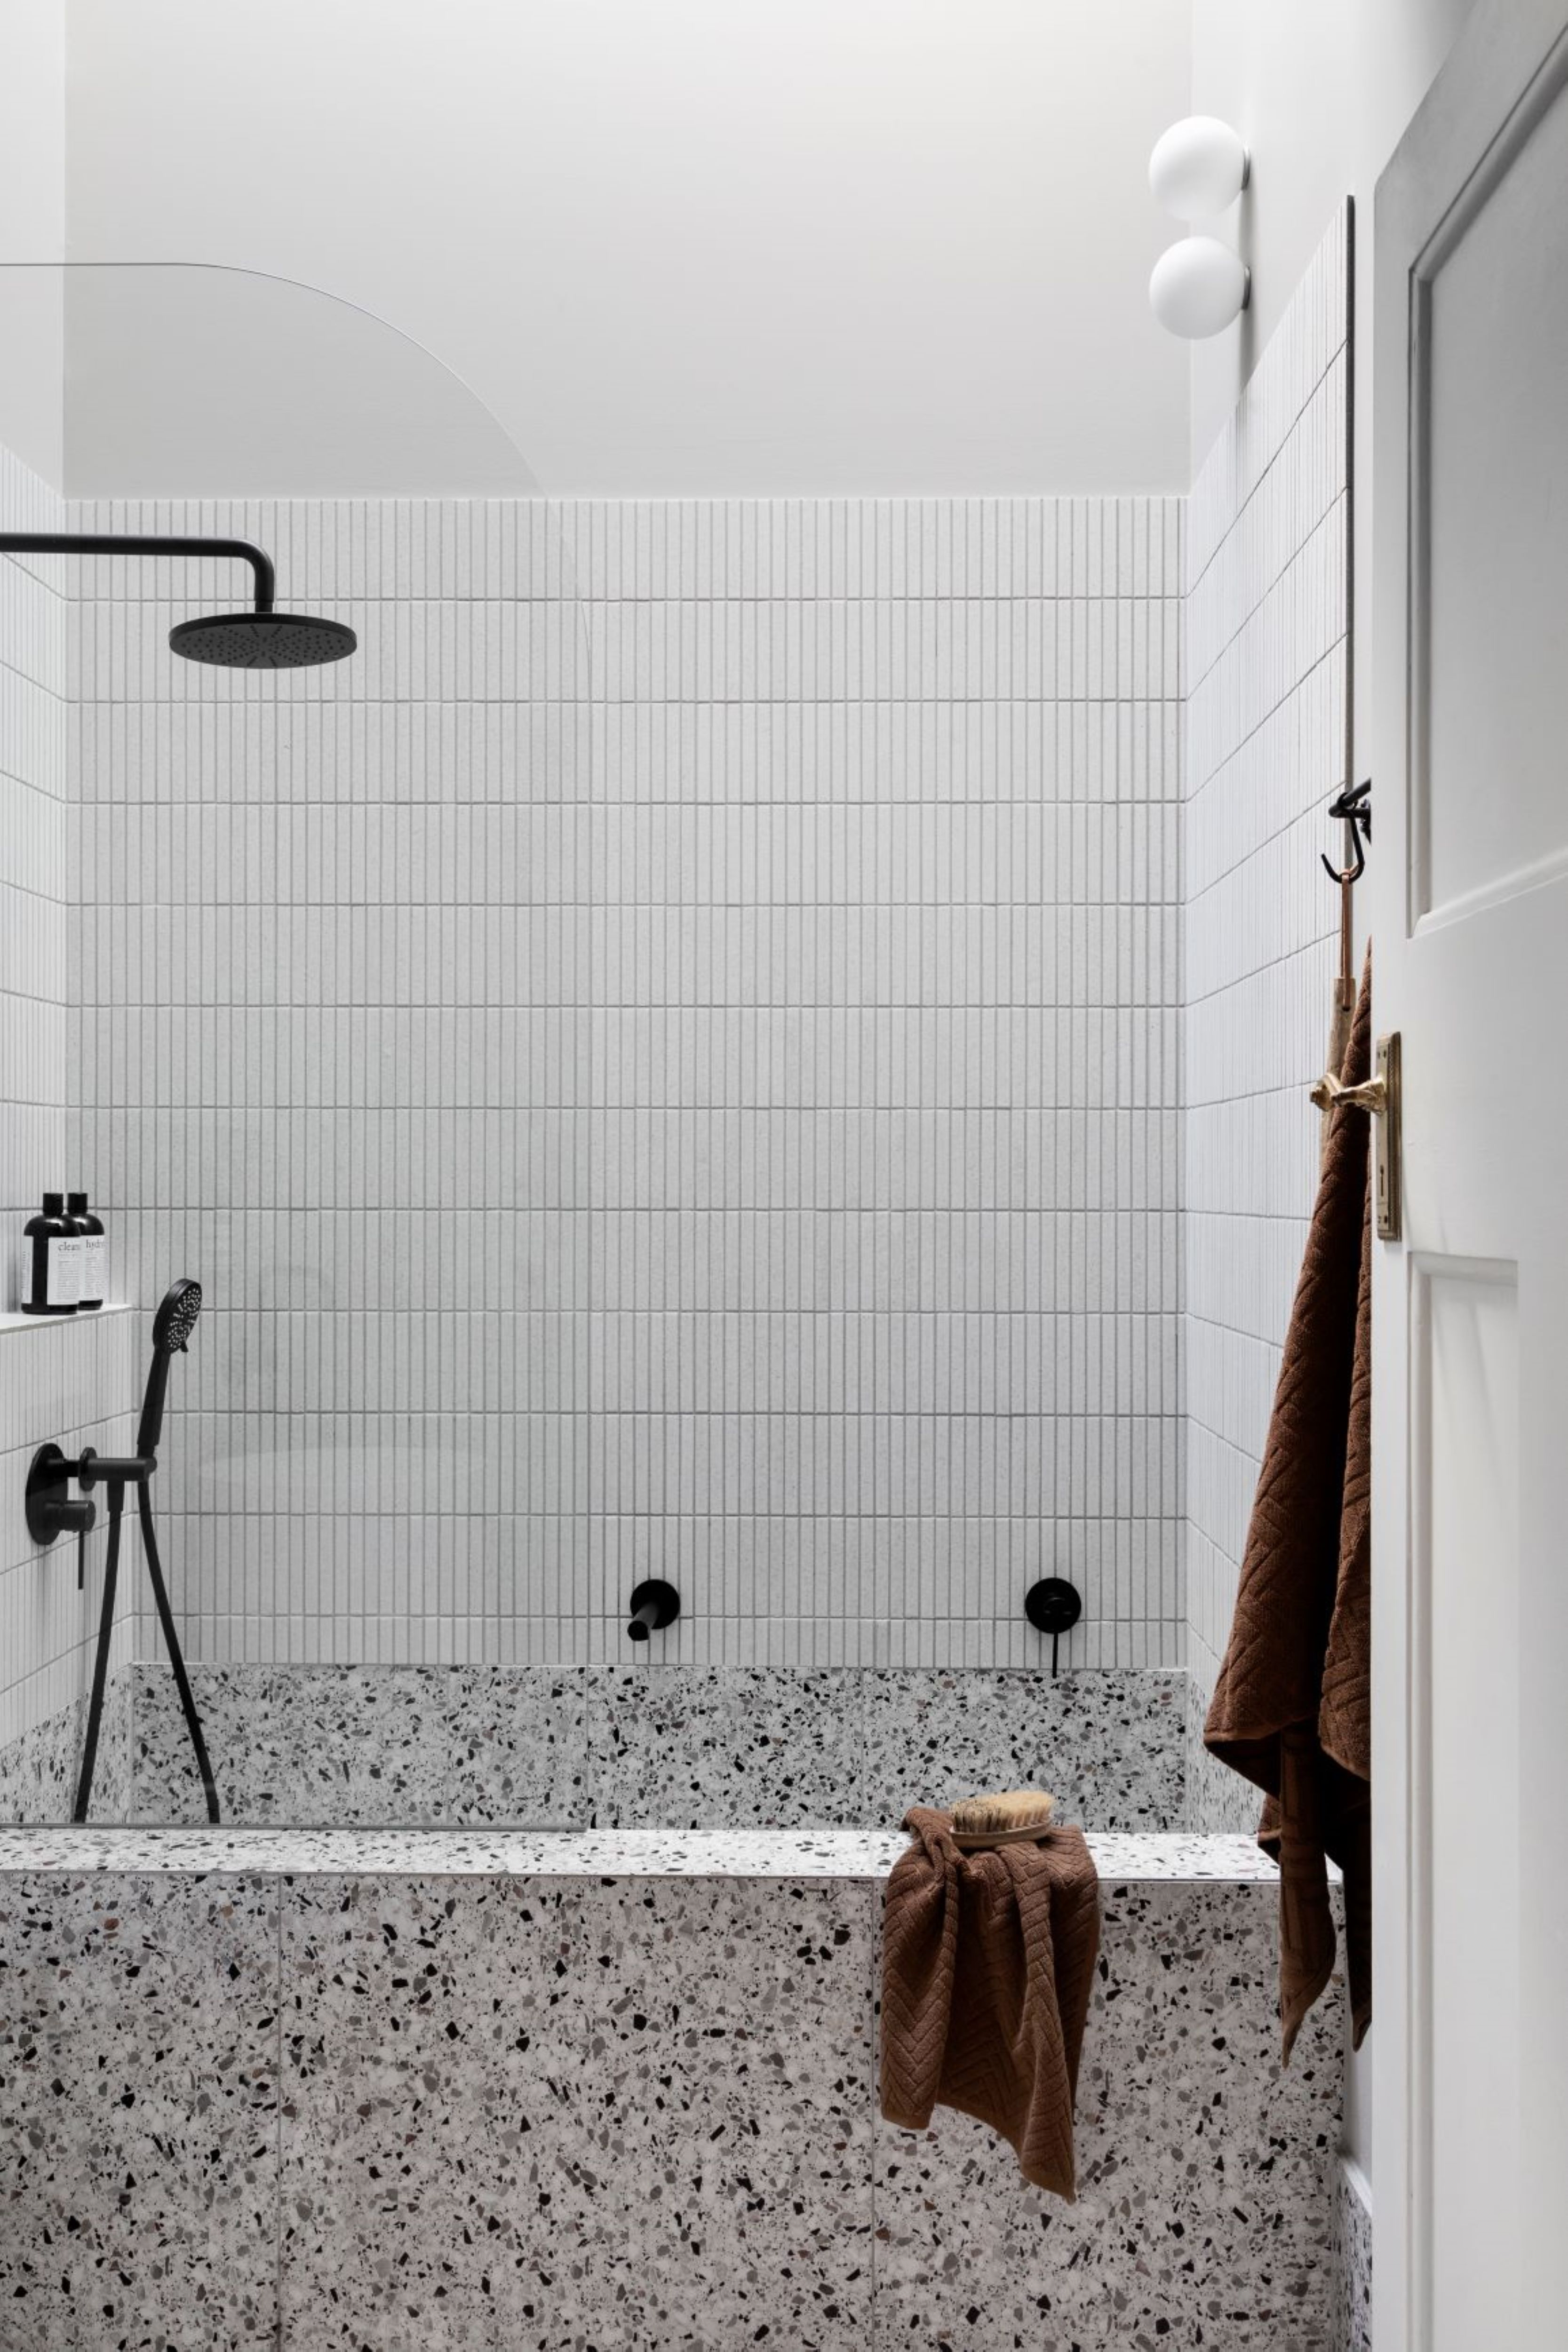 Alison Lewis Interiors Cecil Street Project Bathroom with bath hob and black tapware